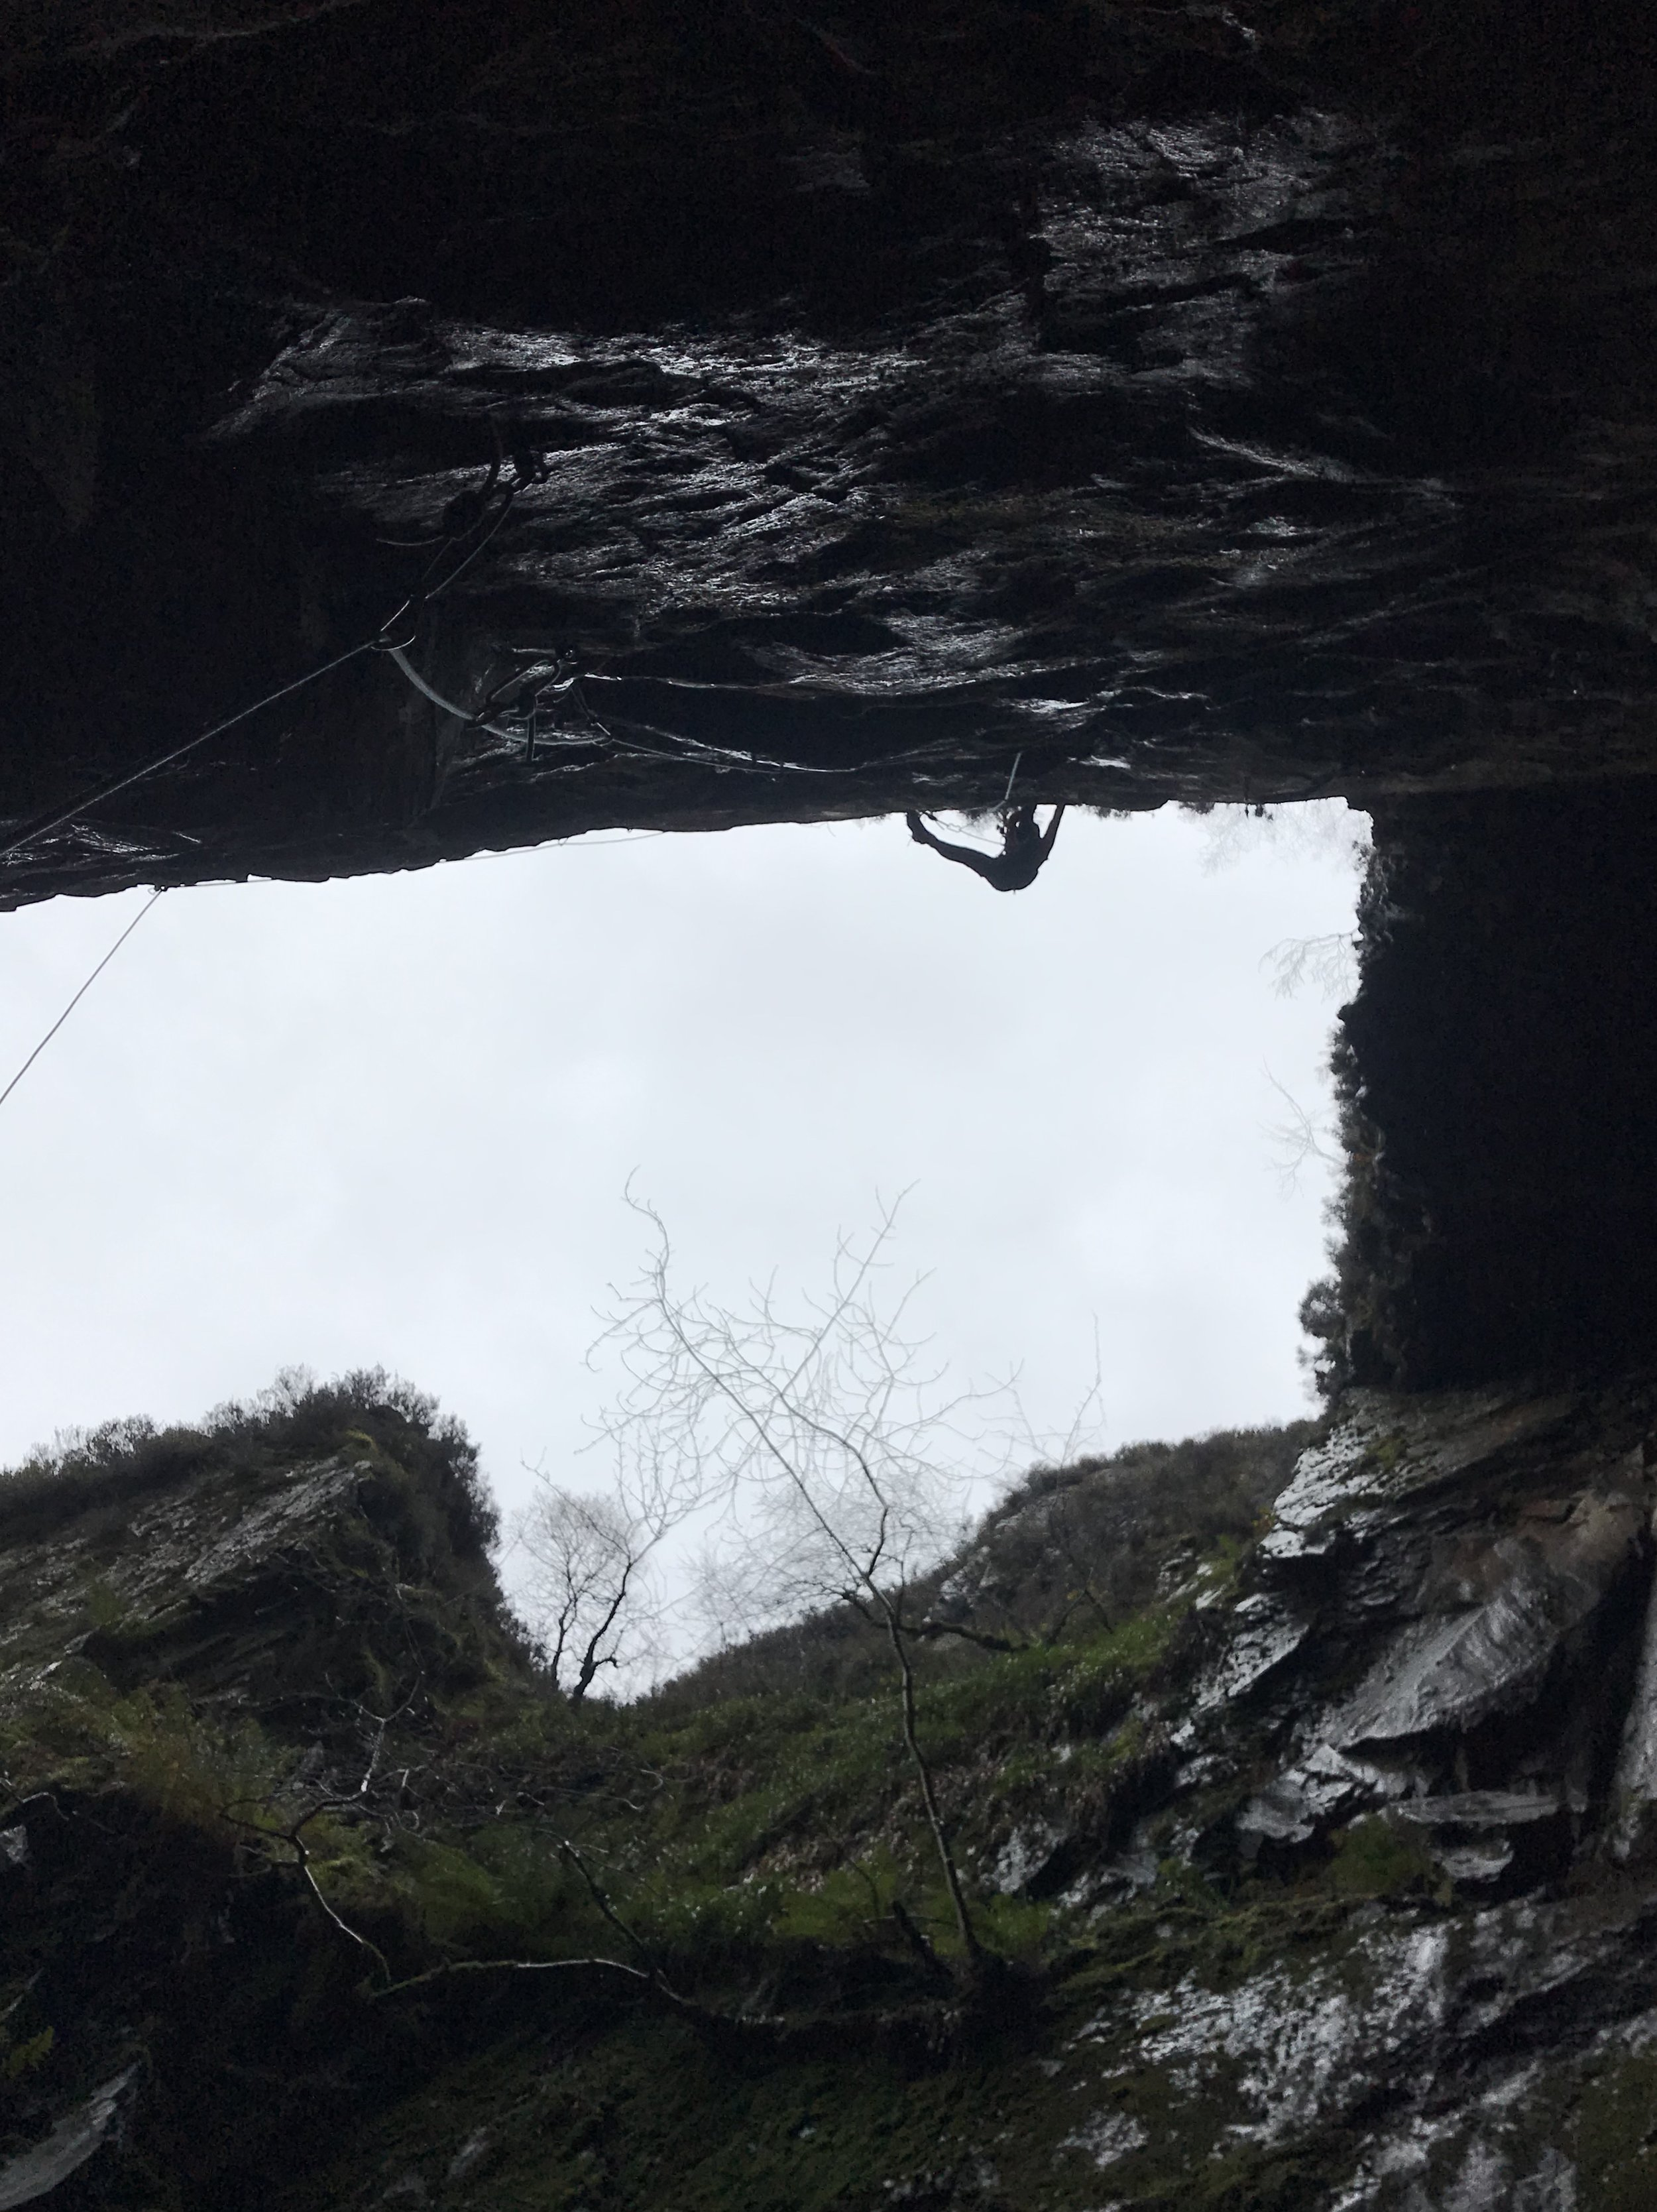 Ben Silvestre experiences the unique world of dry tooling at Mannod, North Wales.